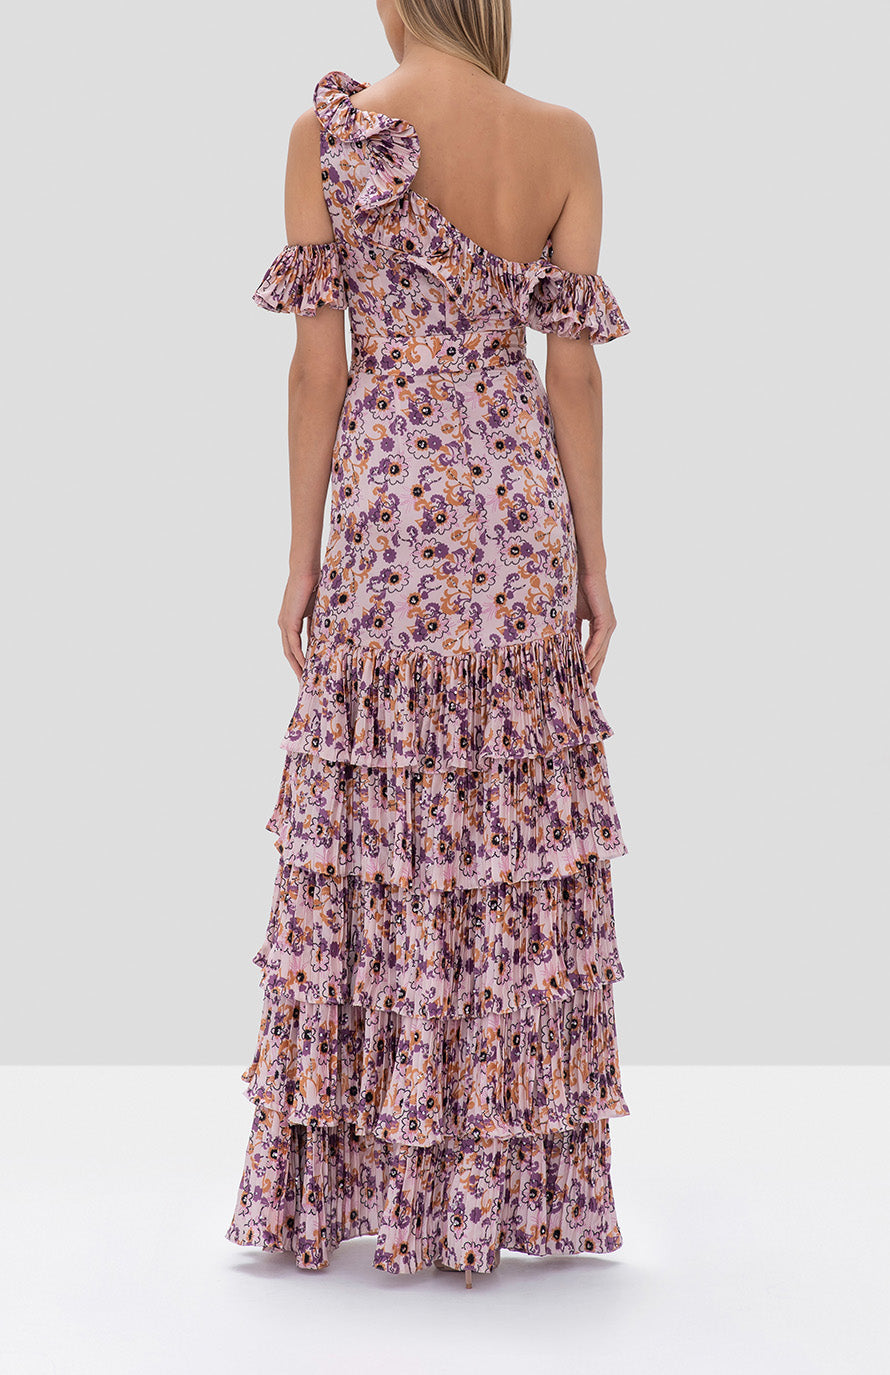 Alexis Amonda Dress Lilac Beaded Floral from the Fall Winter 2019 Ready To Wear Collection - Rear View